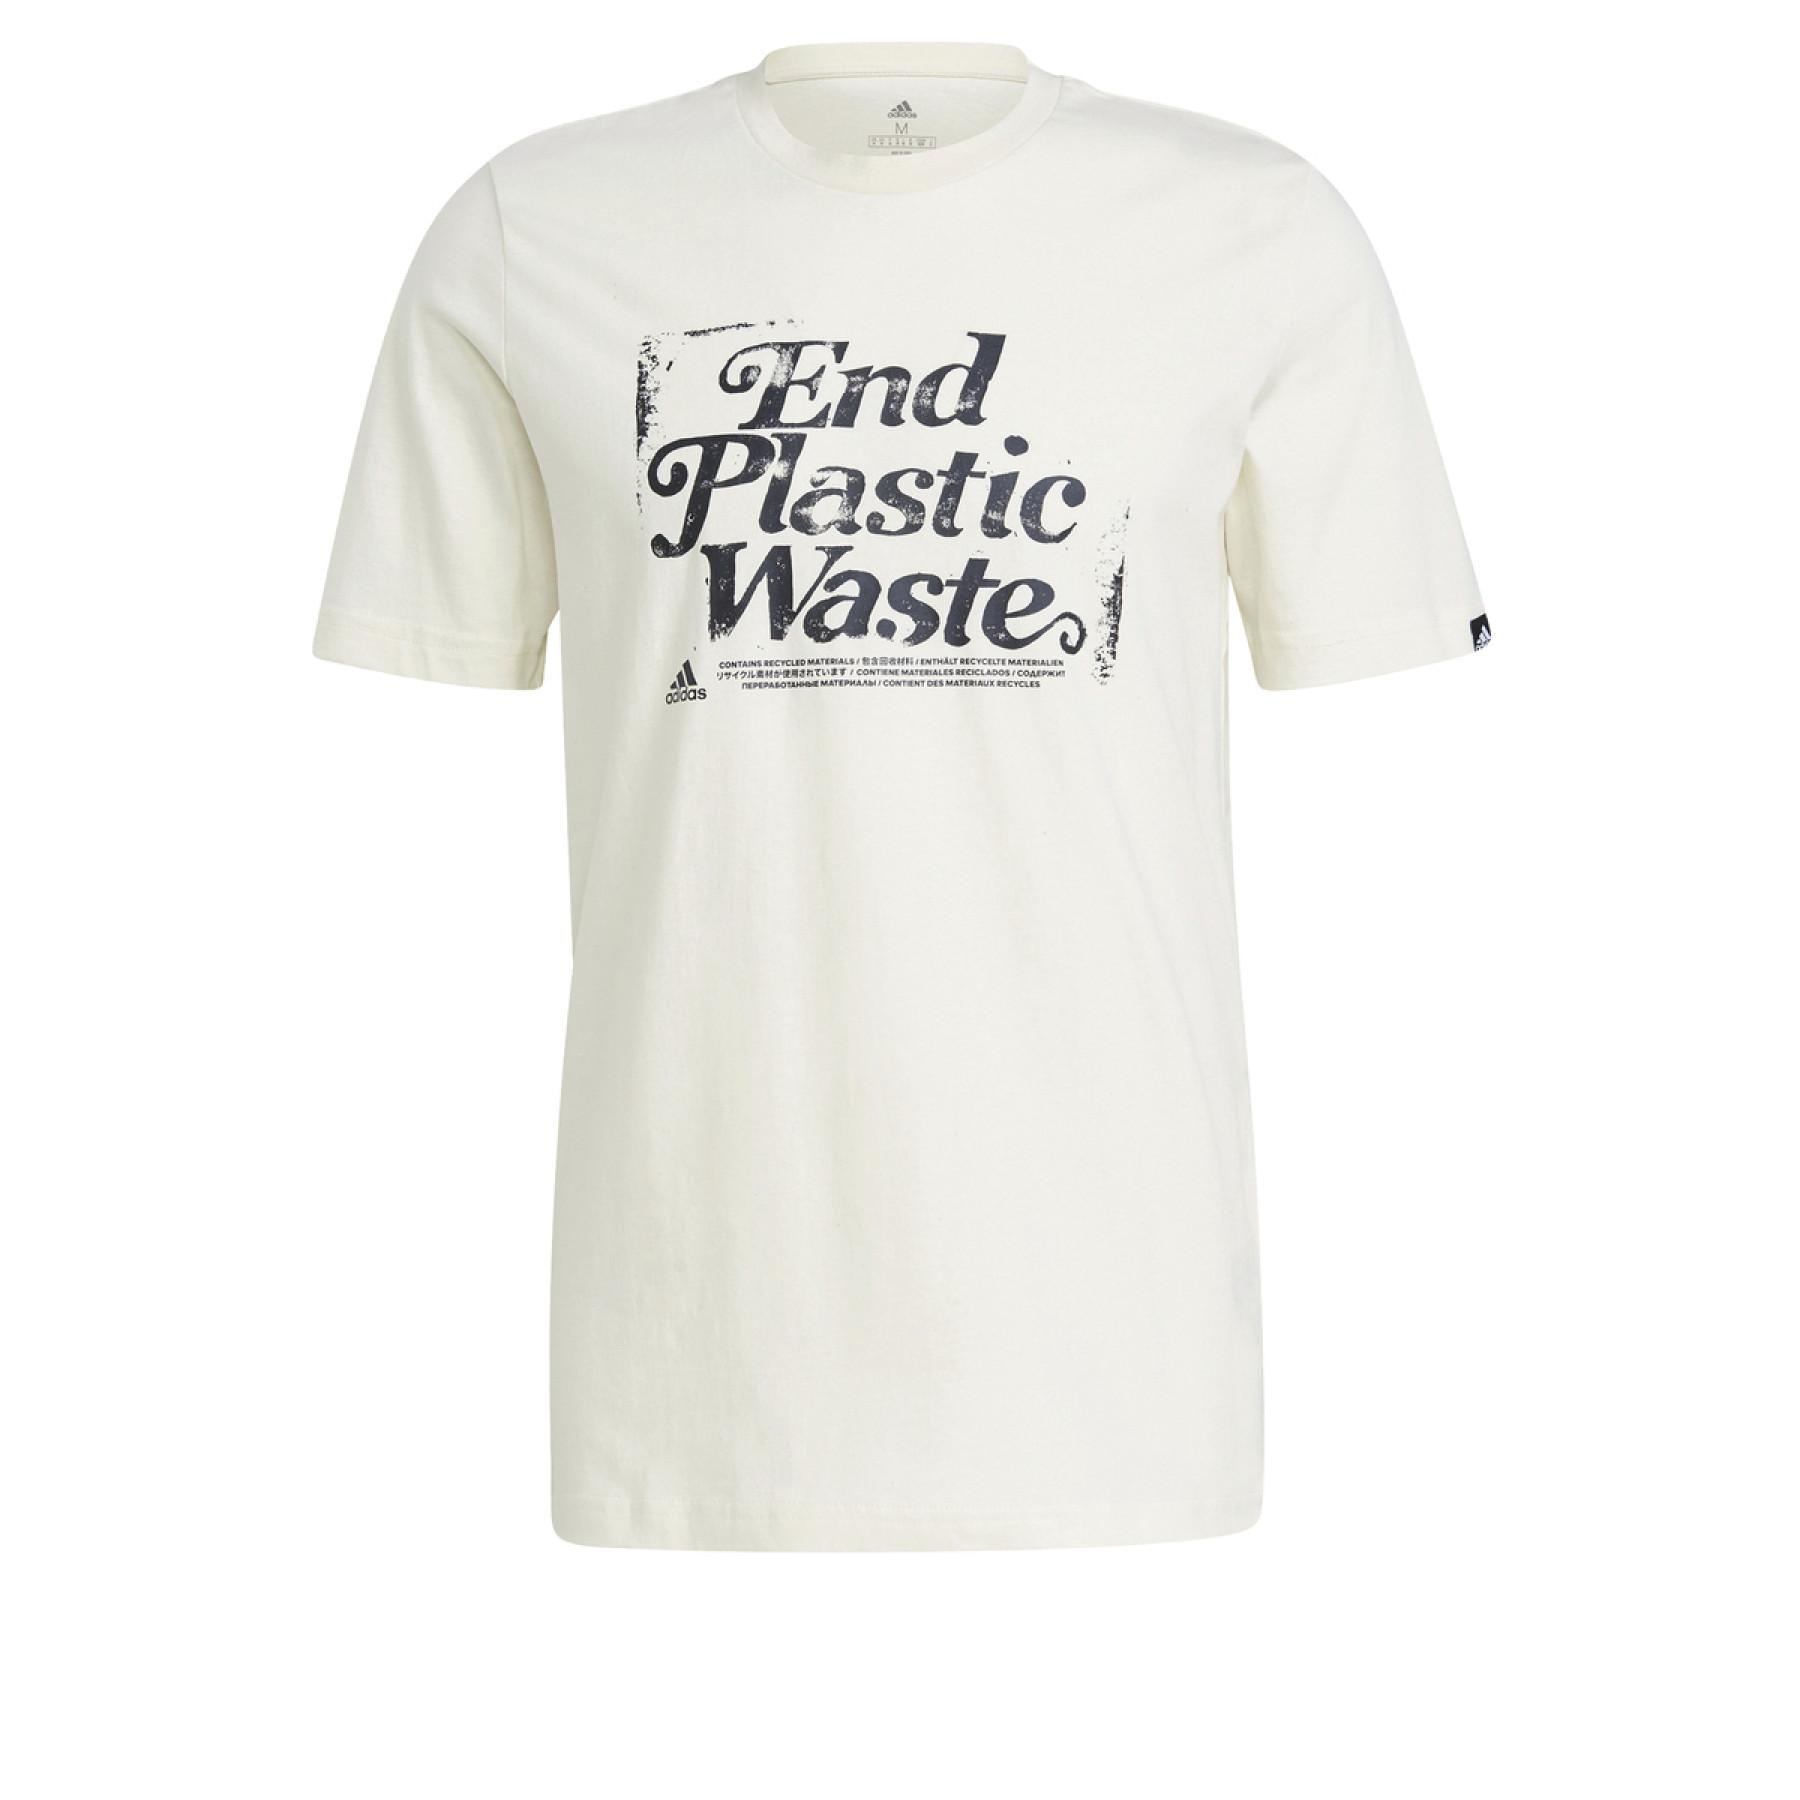 adidas Slogan Recycled Cotton Graphic T-Shirt